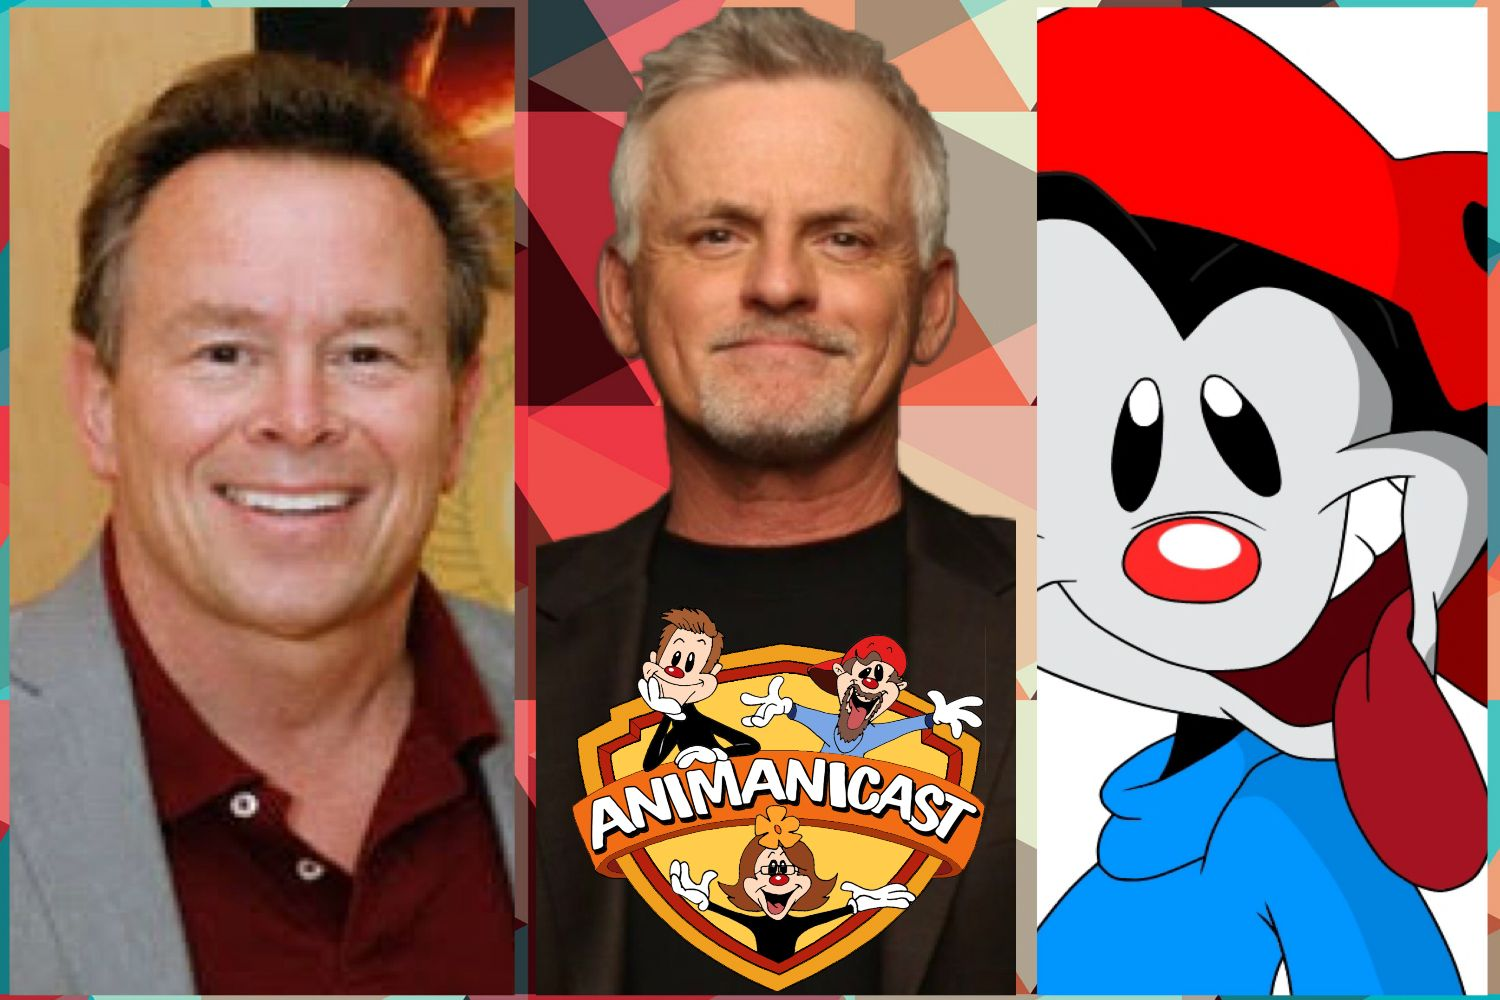 Animanicast 63a with Animaniacs Creator Tom Ruegger & Rob